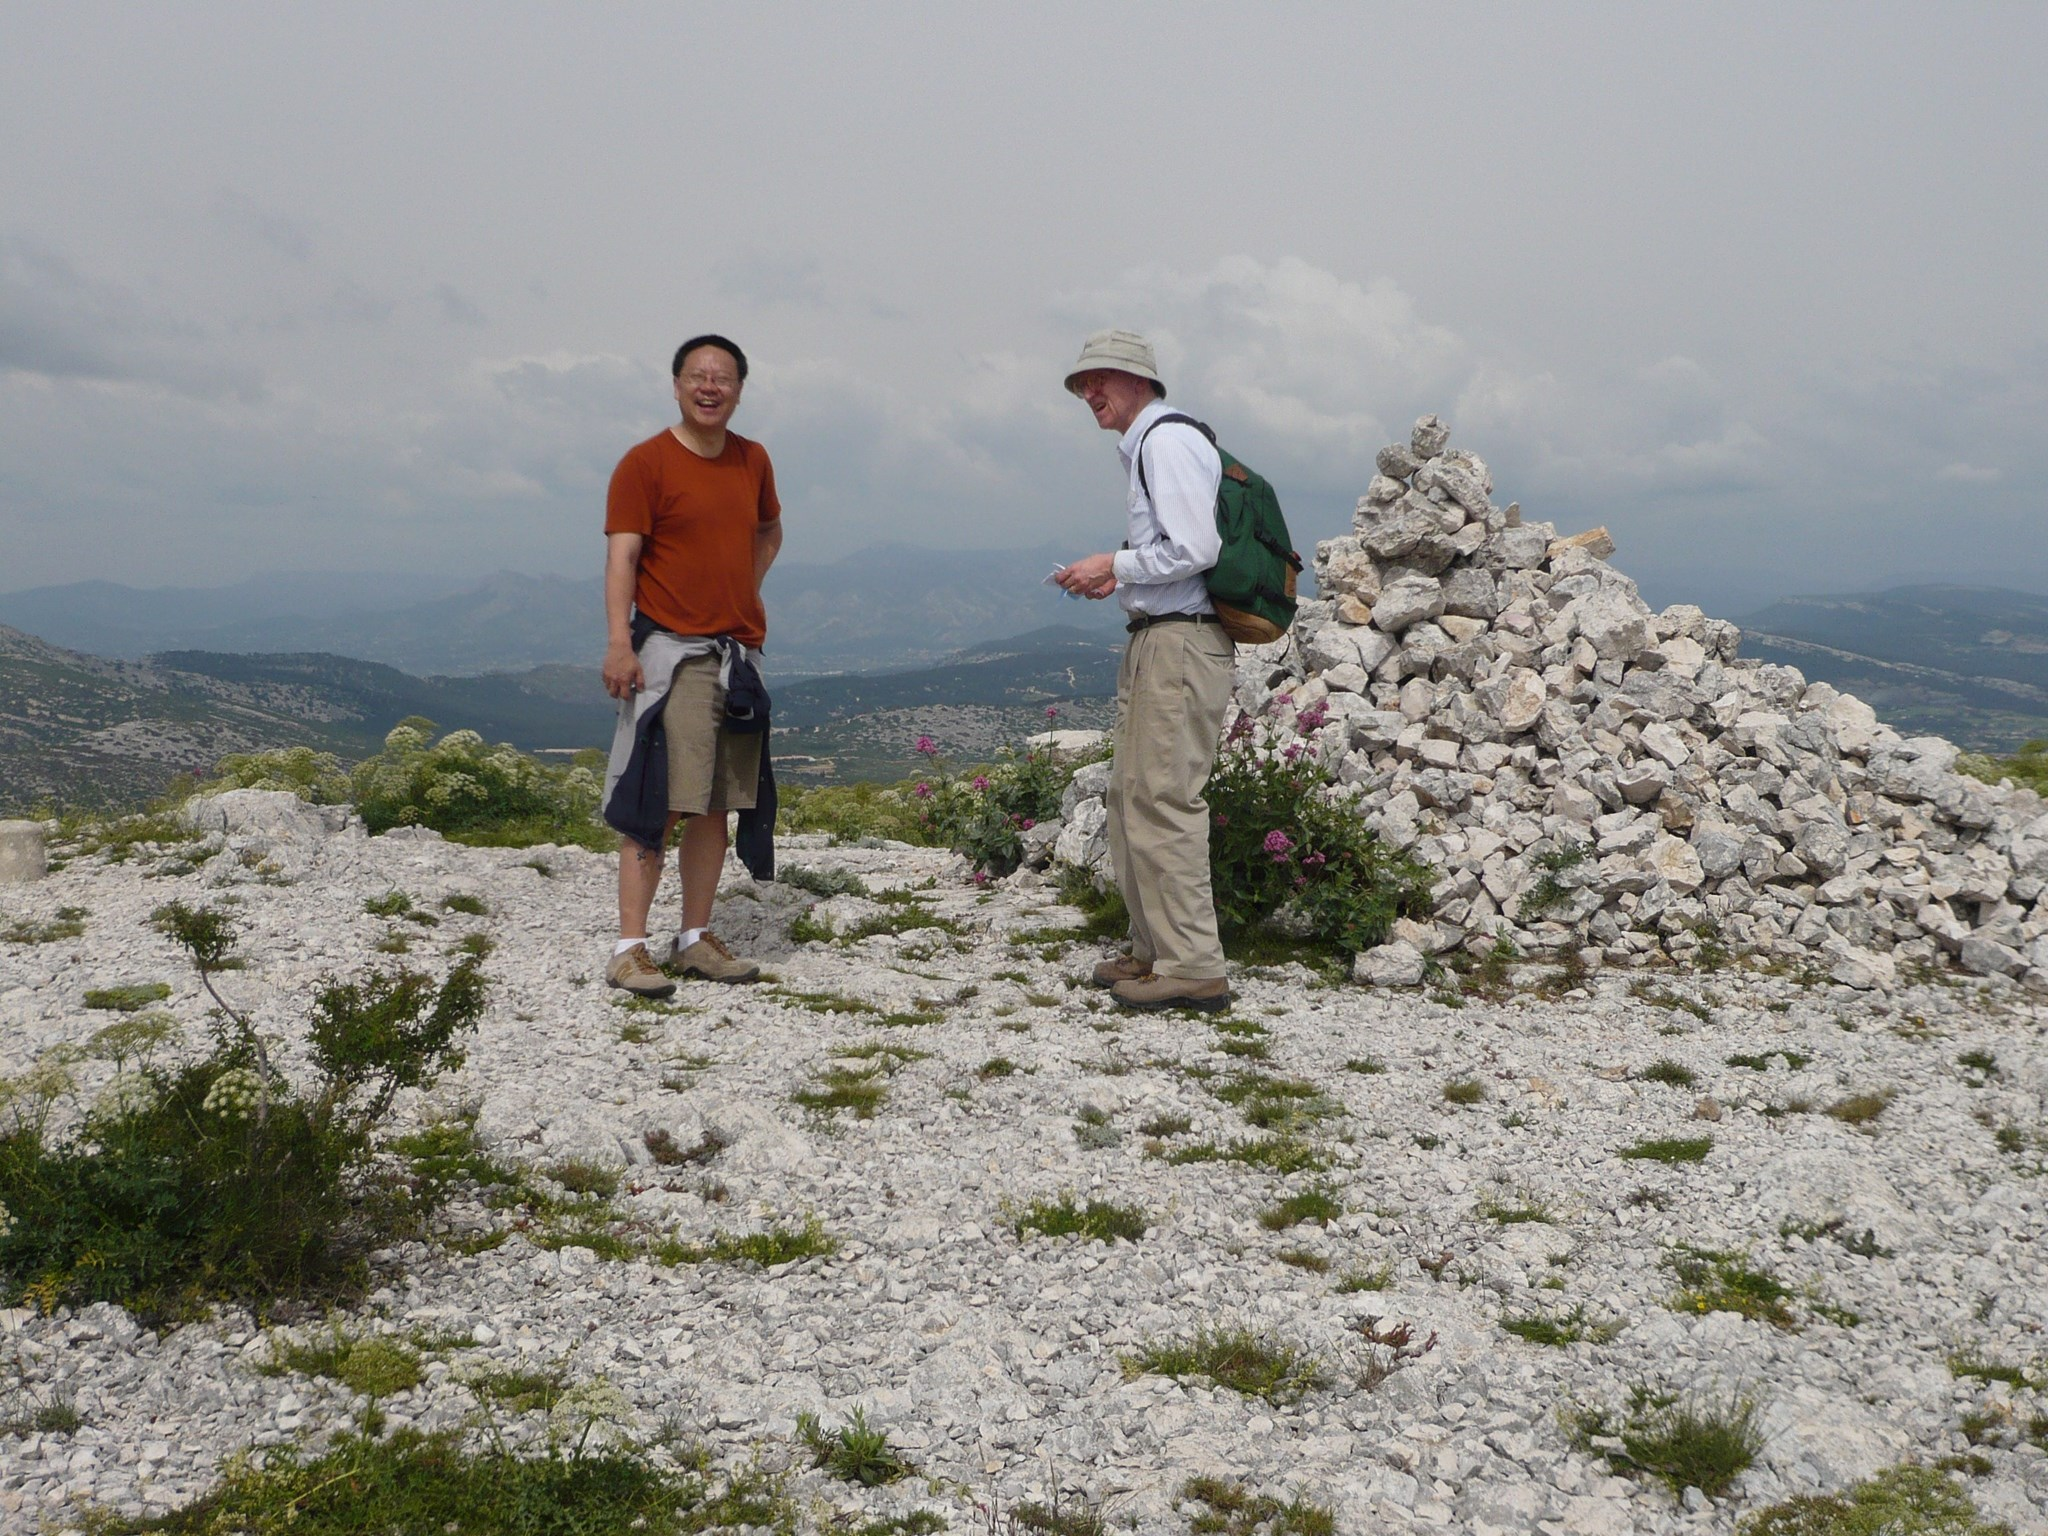 Wenbo Li & Dick Dudley, Luminy hike -2008;  Jon Wellner photo